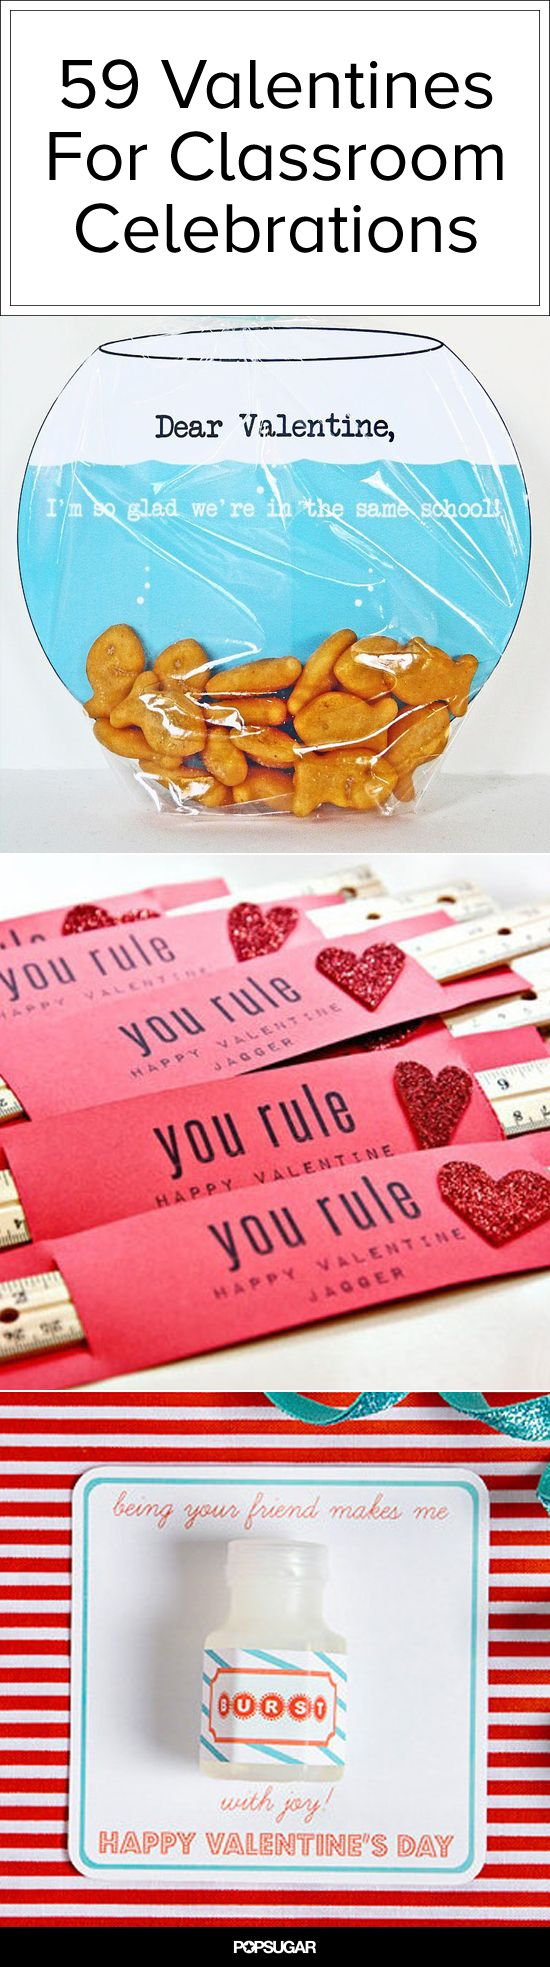 We love all these printable Valentine's Day cards for school!